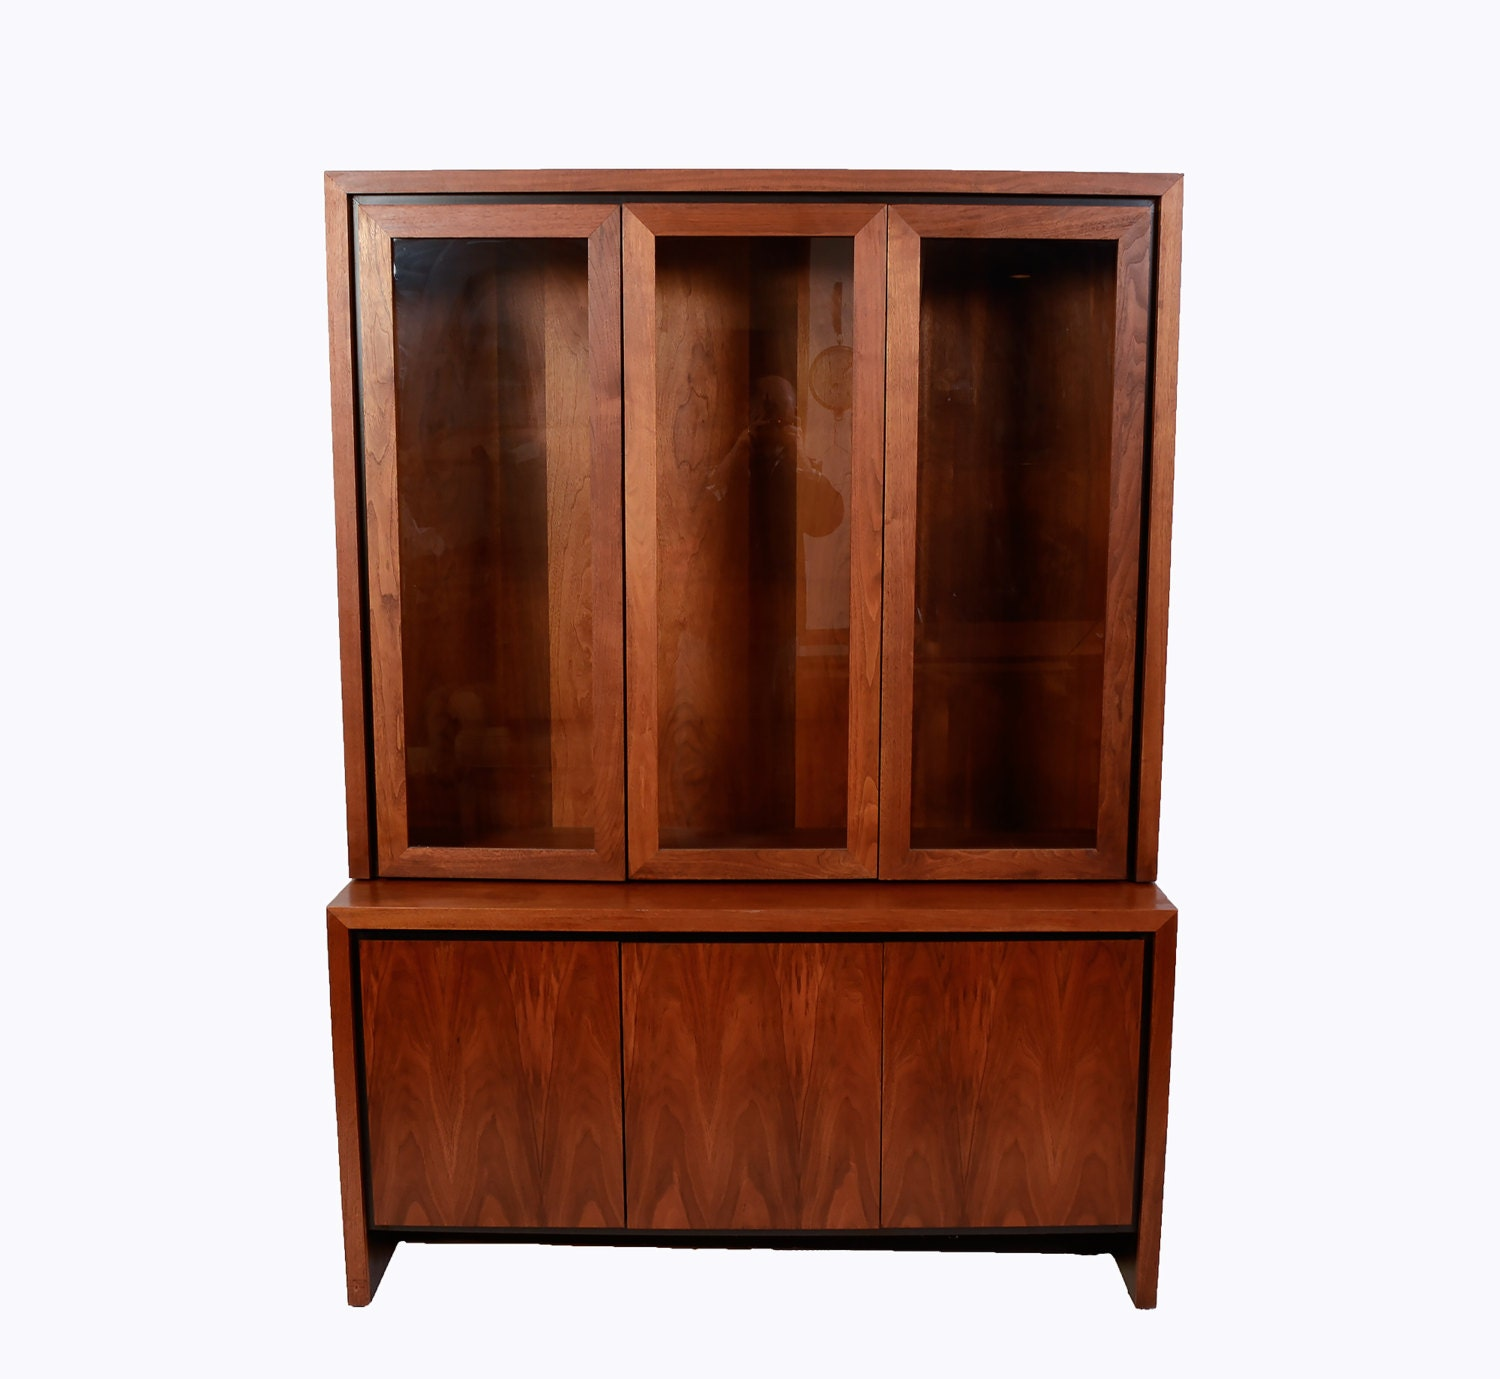 Walnut China Cabinet Dillingham Danish Modern 1976 Brutalist